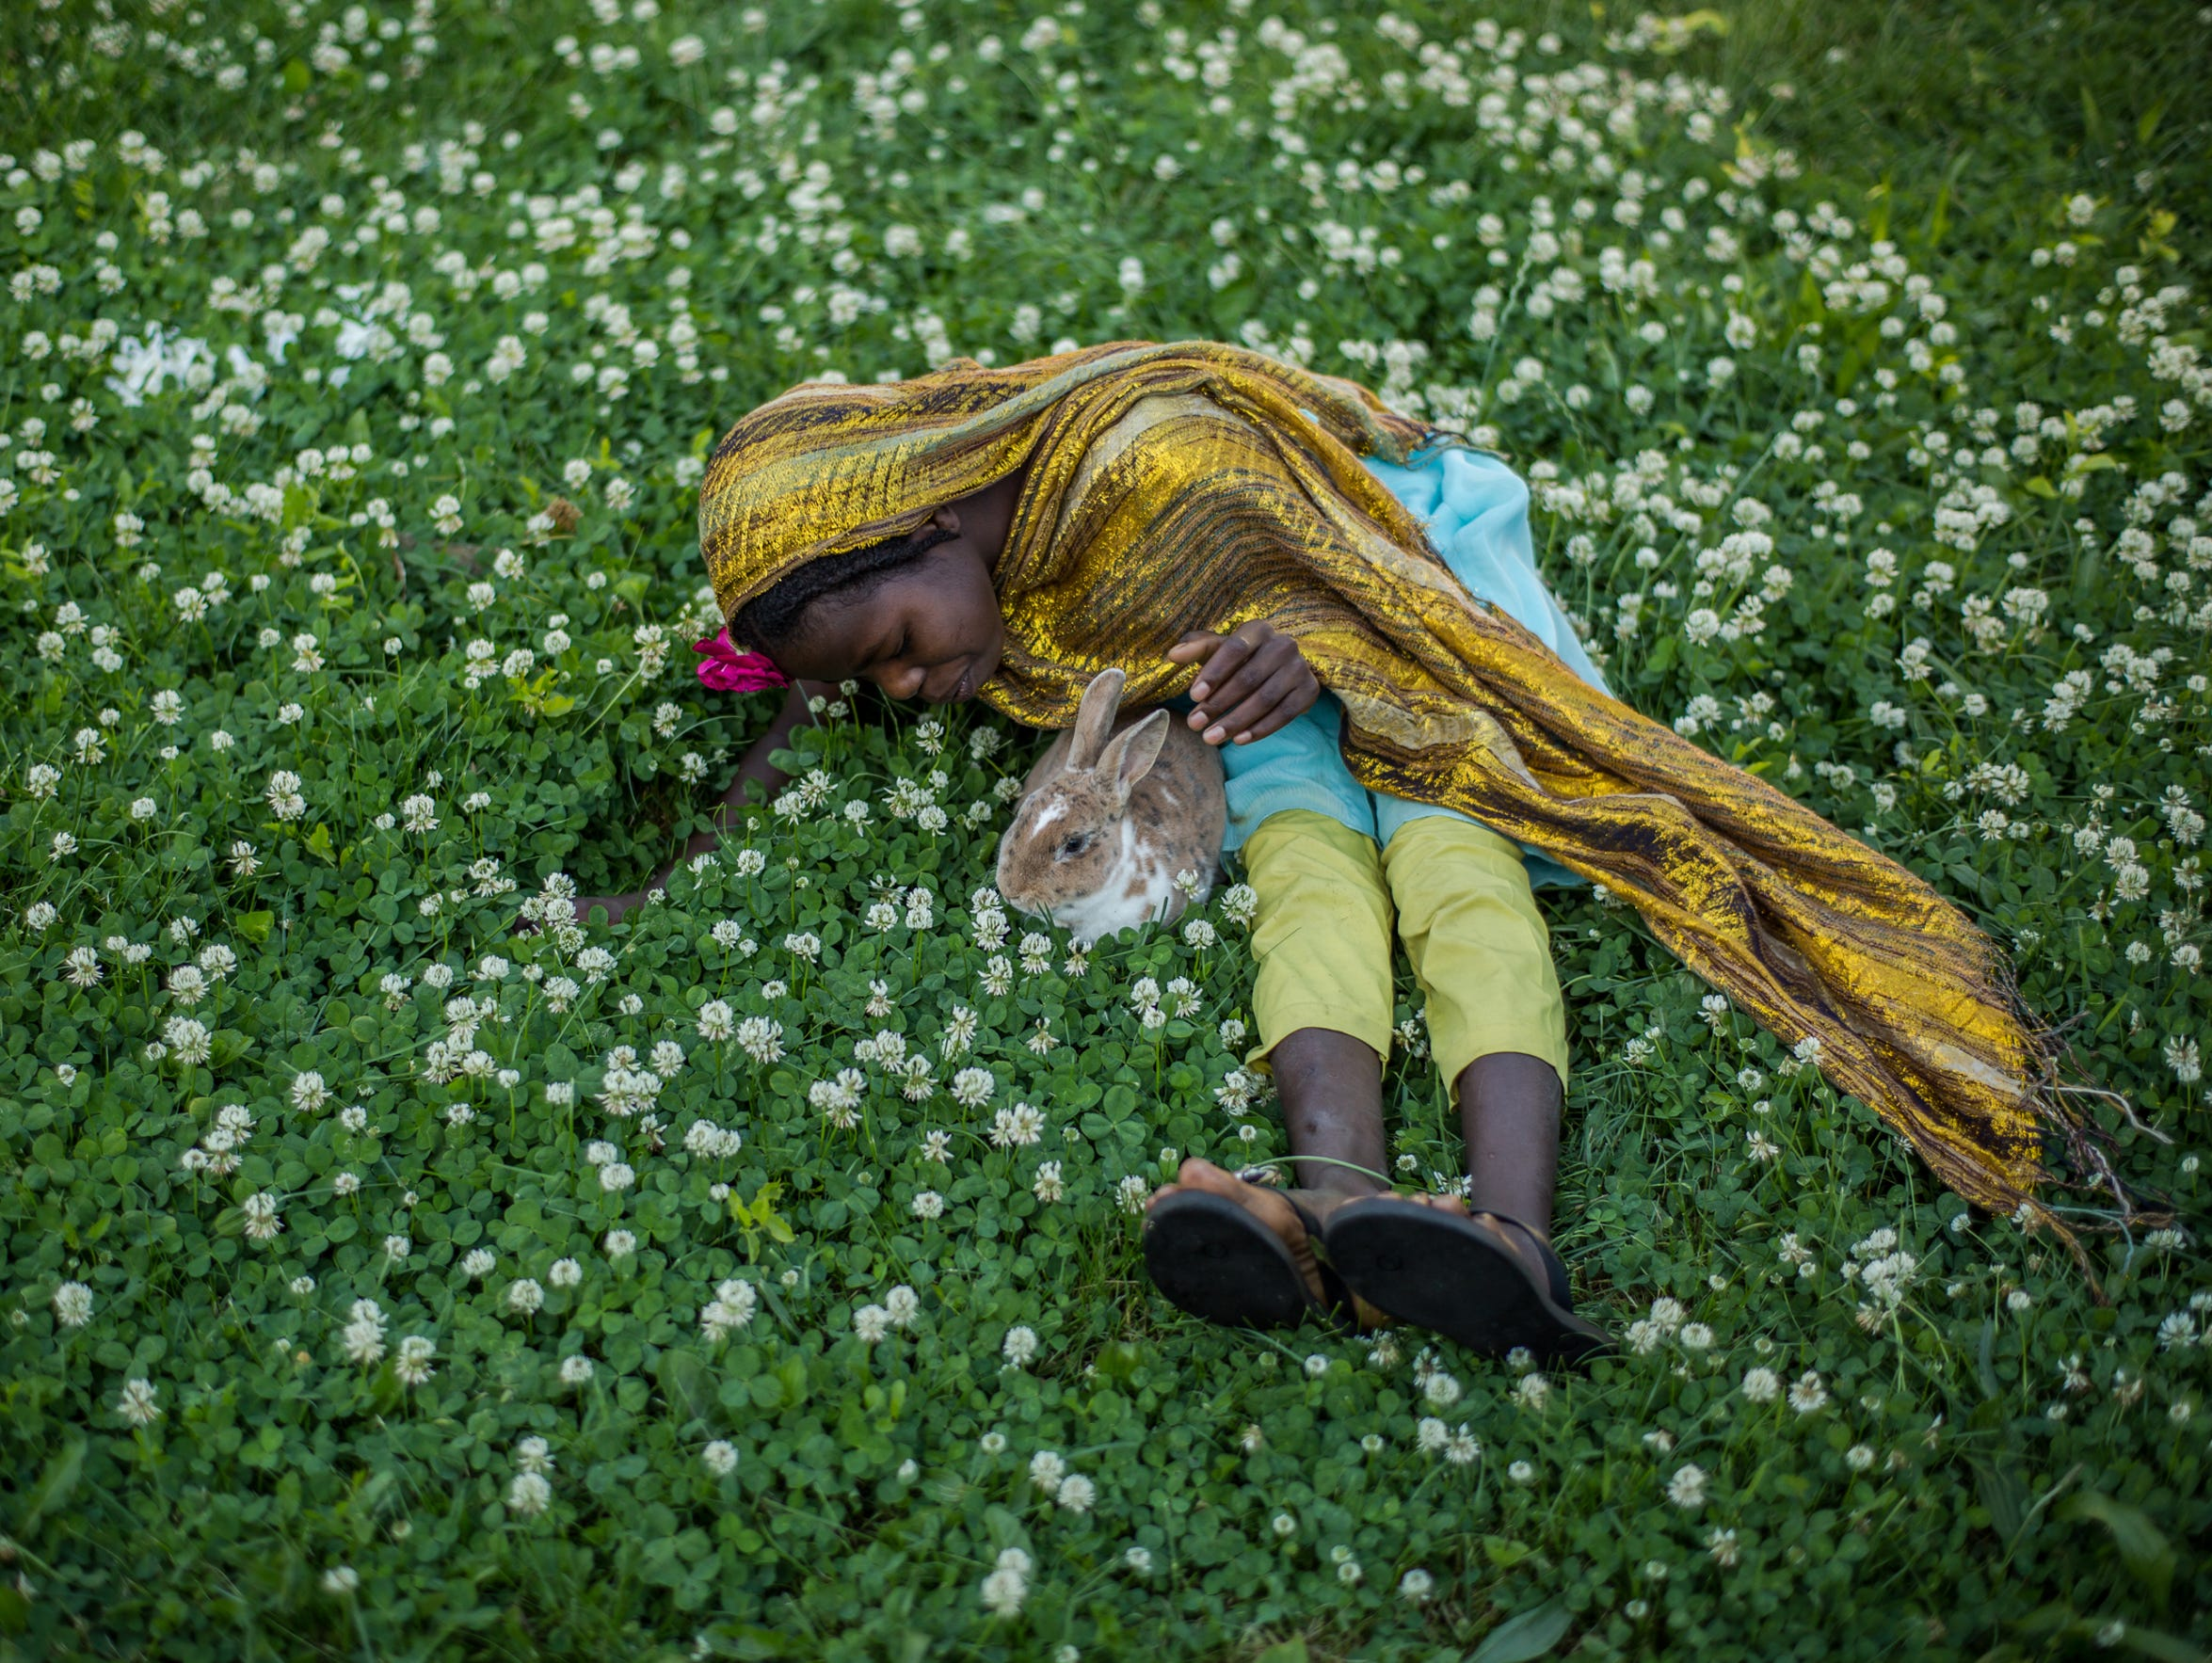 Guisma Yacoub, 12, of Detroit, plays with a rabbit,